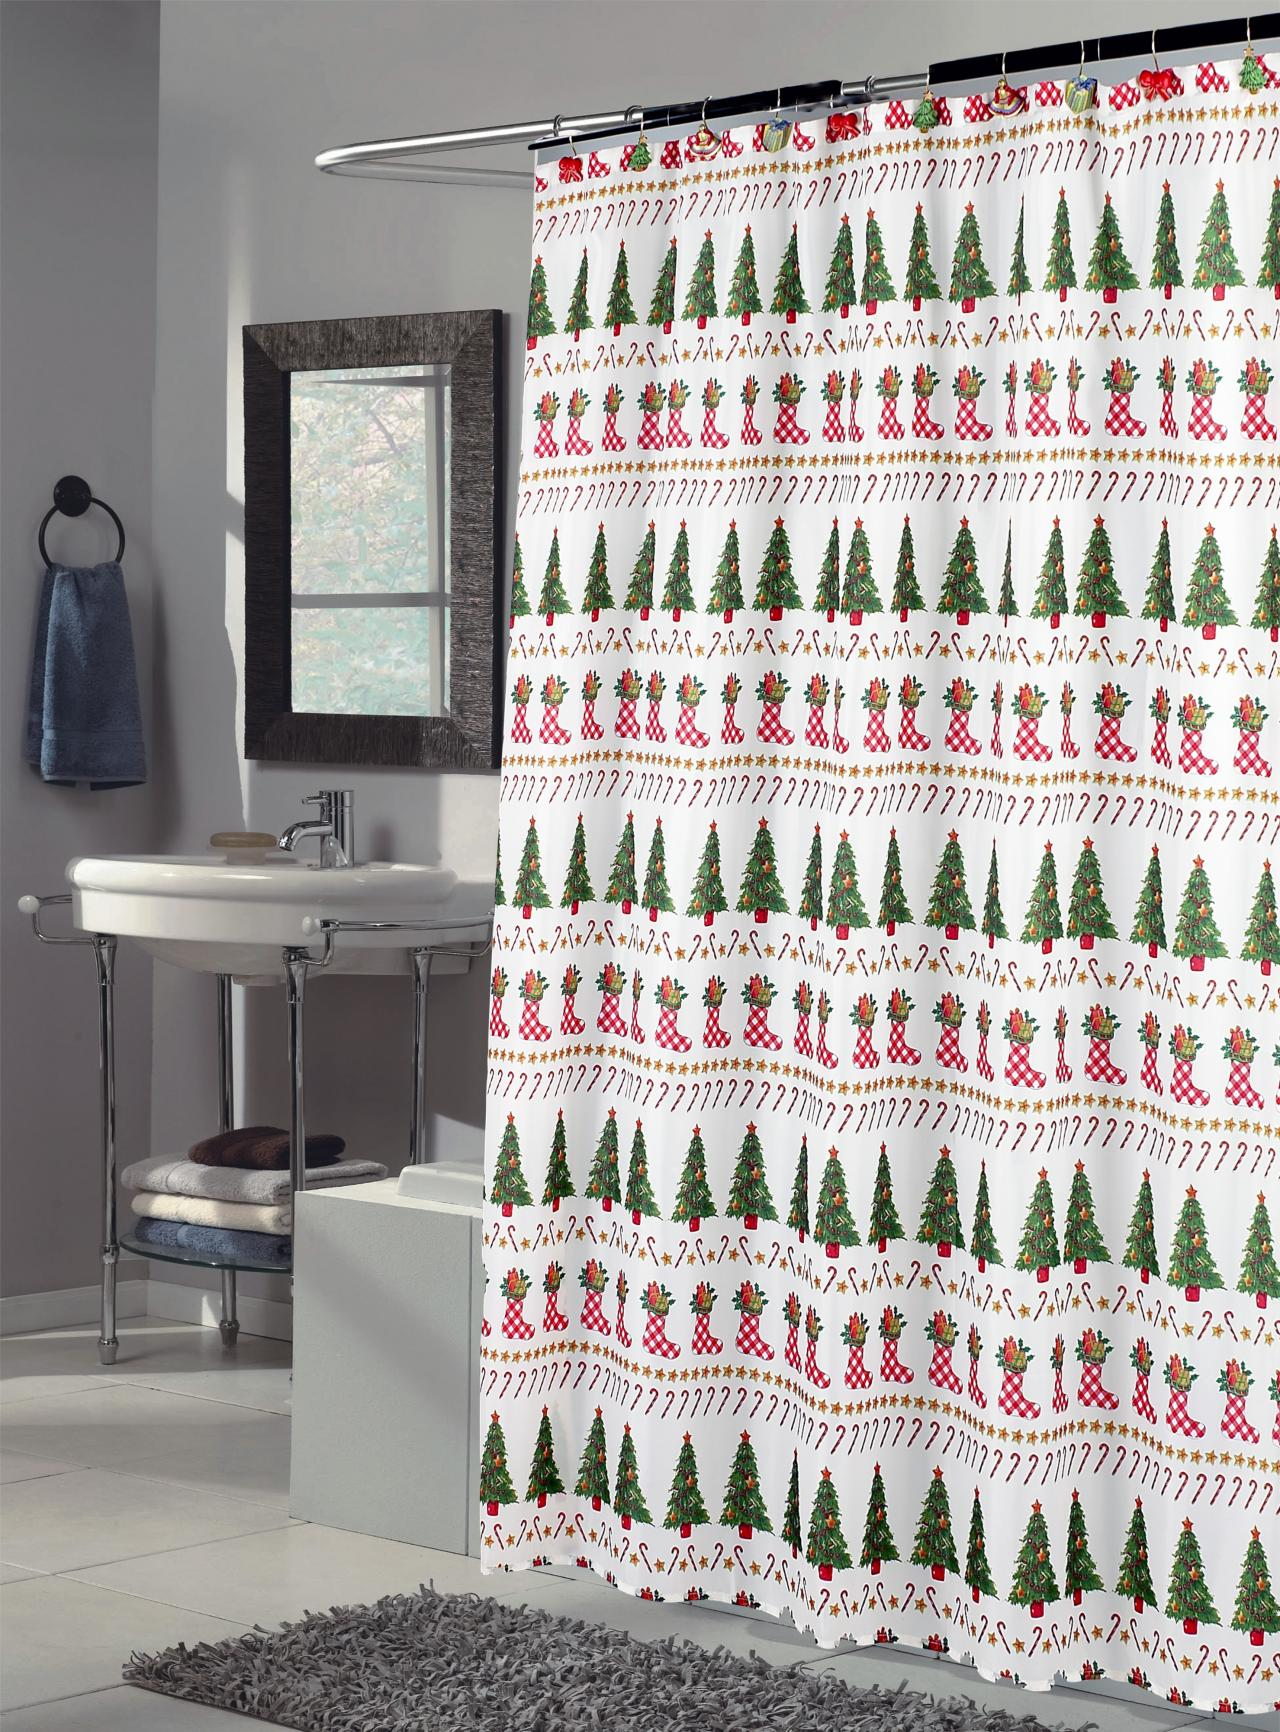 Holiday Shower Curtains Christmas KH Design - Shower curtains for bathroom